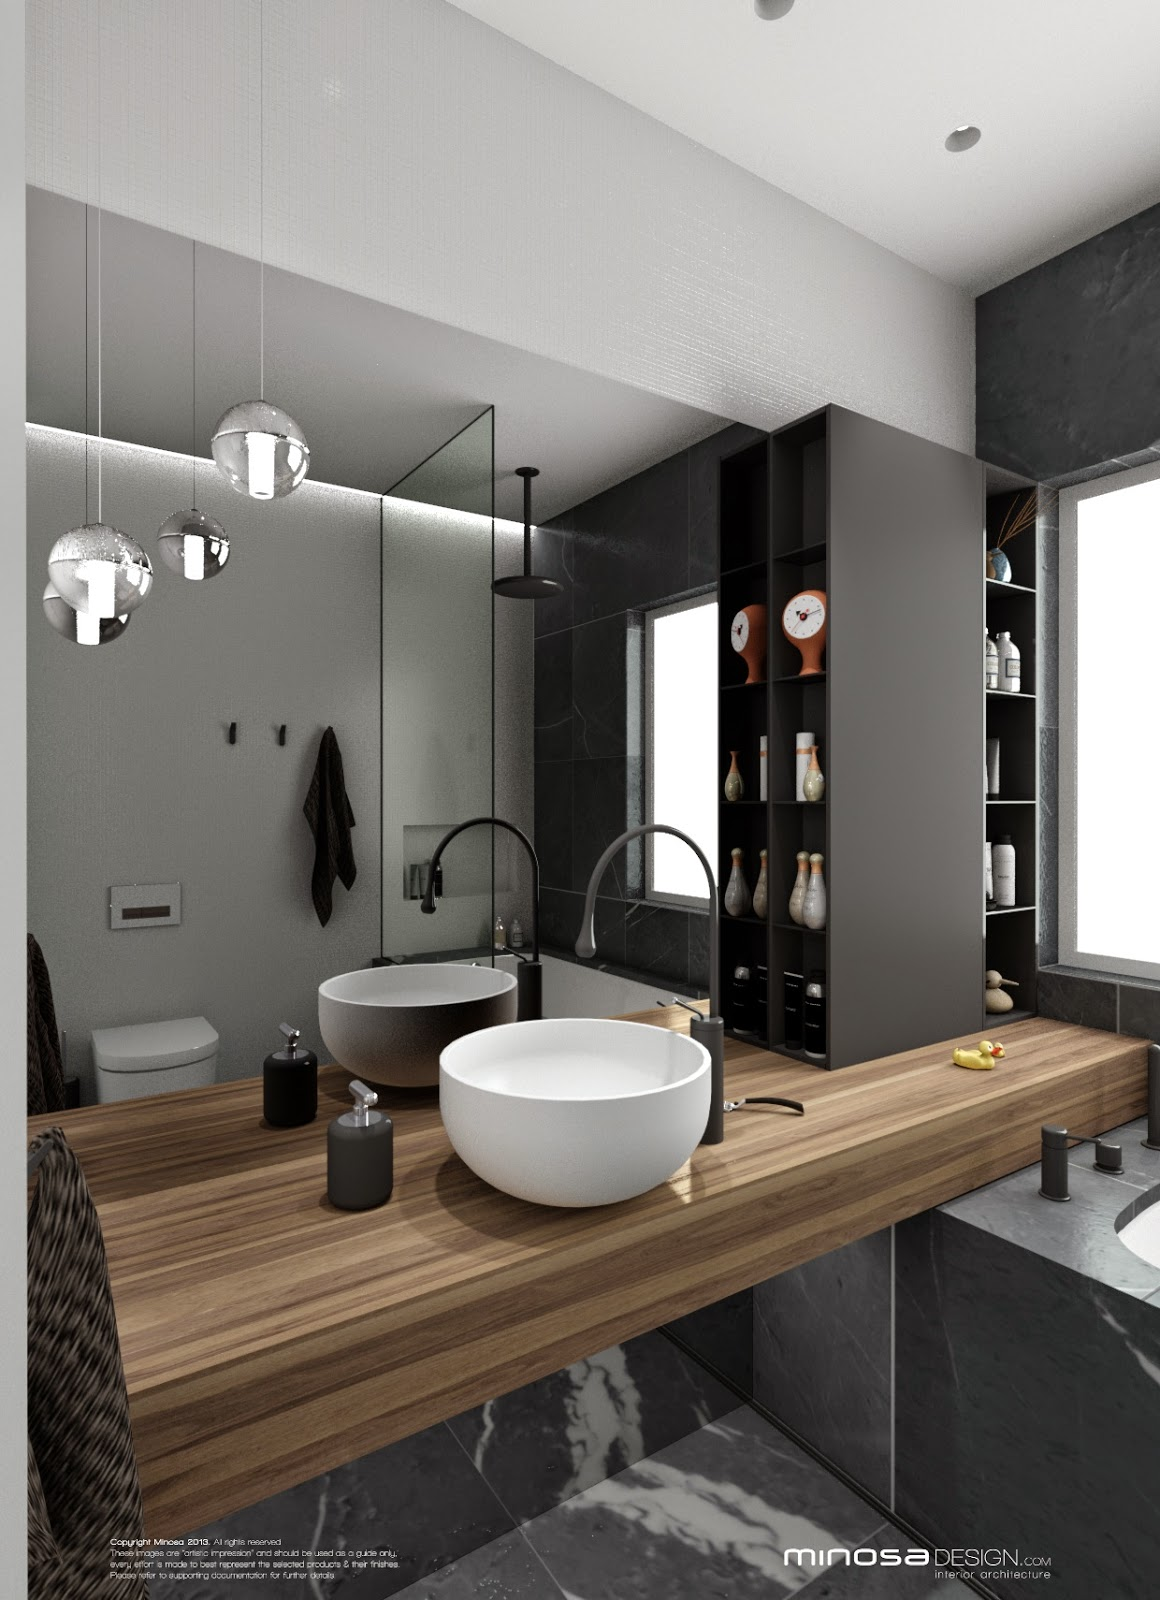 Minosa bathroom design small space feels large for Small toilet room design